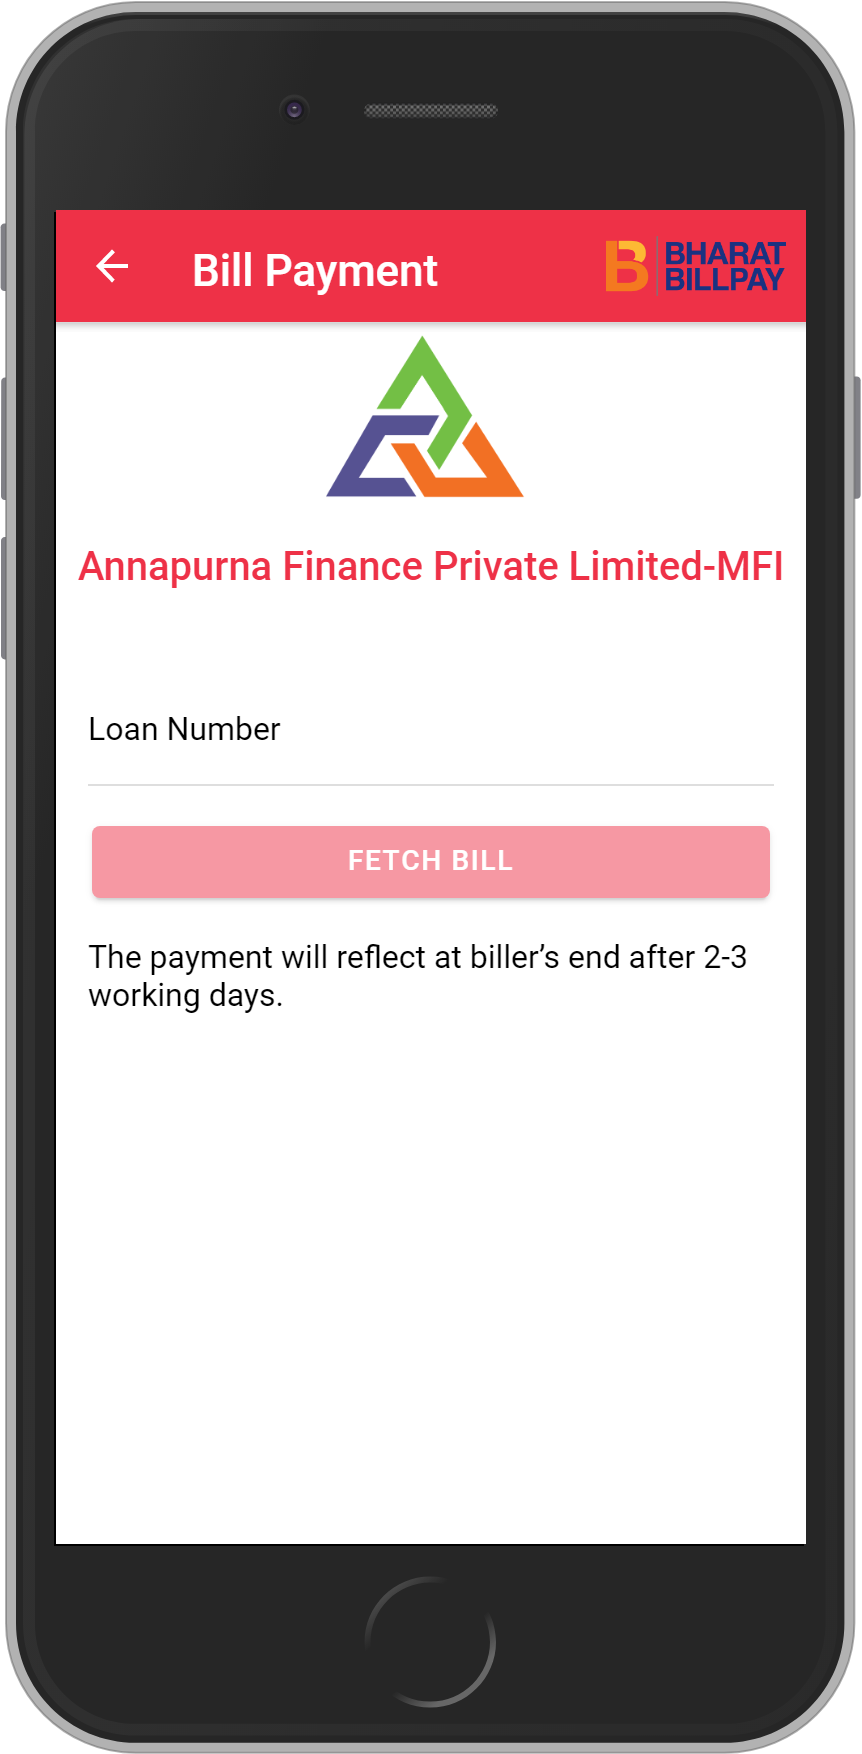 Get UNLIMITED <b>0.1%</b> CASHBACK on Annapurna Finance Private Limited-MFI Loan Payment.